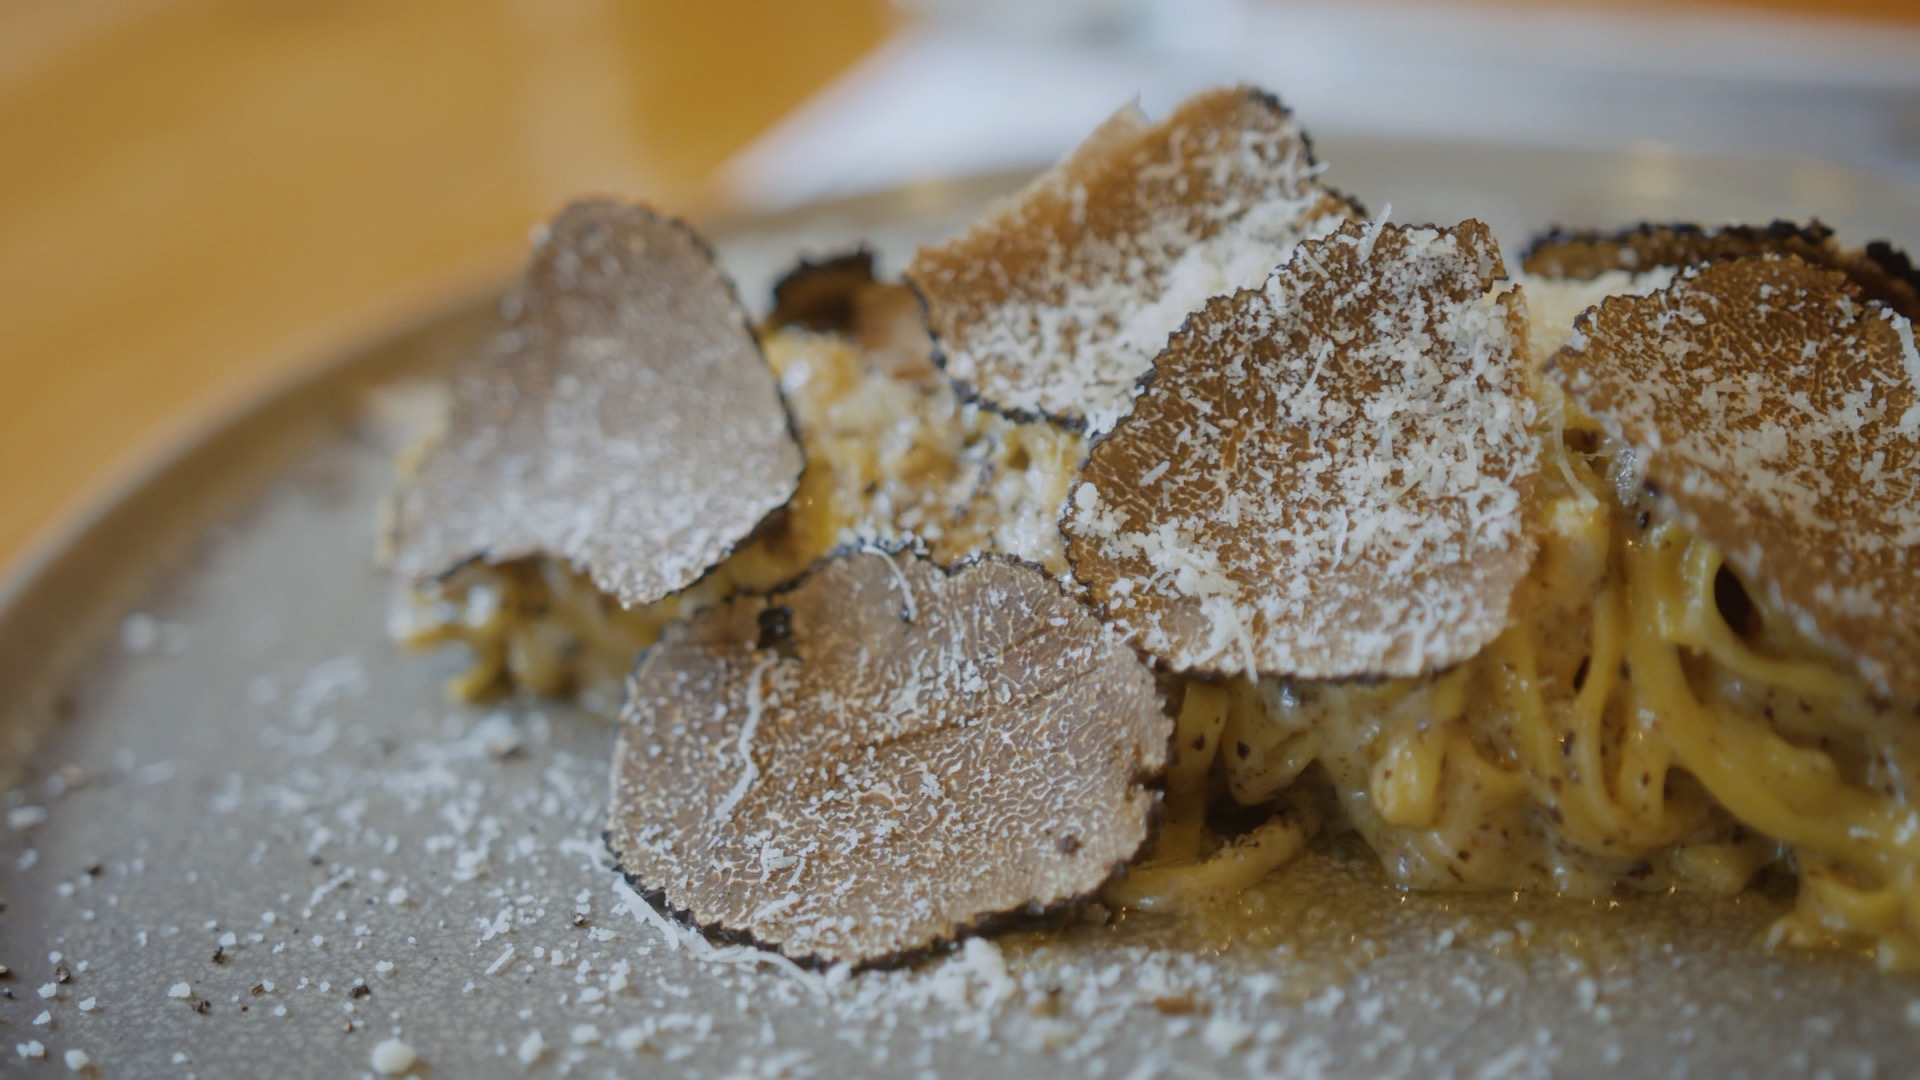 A frame from the URSA Mini pro G2 of Toni's Kitchen pasta with truffles. All G2 shots are with the Sigma Art 18-35mm 1.8